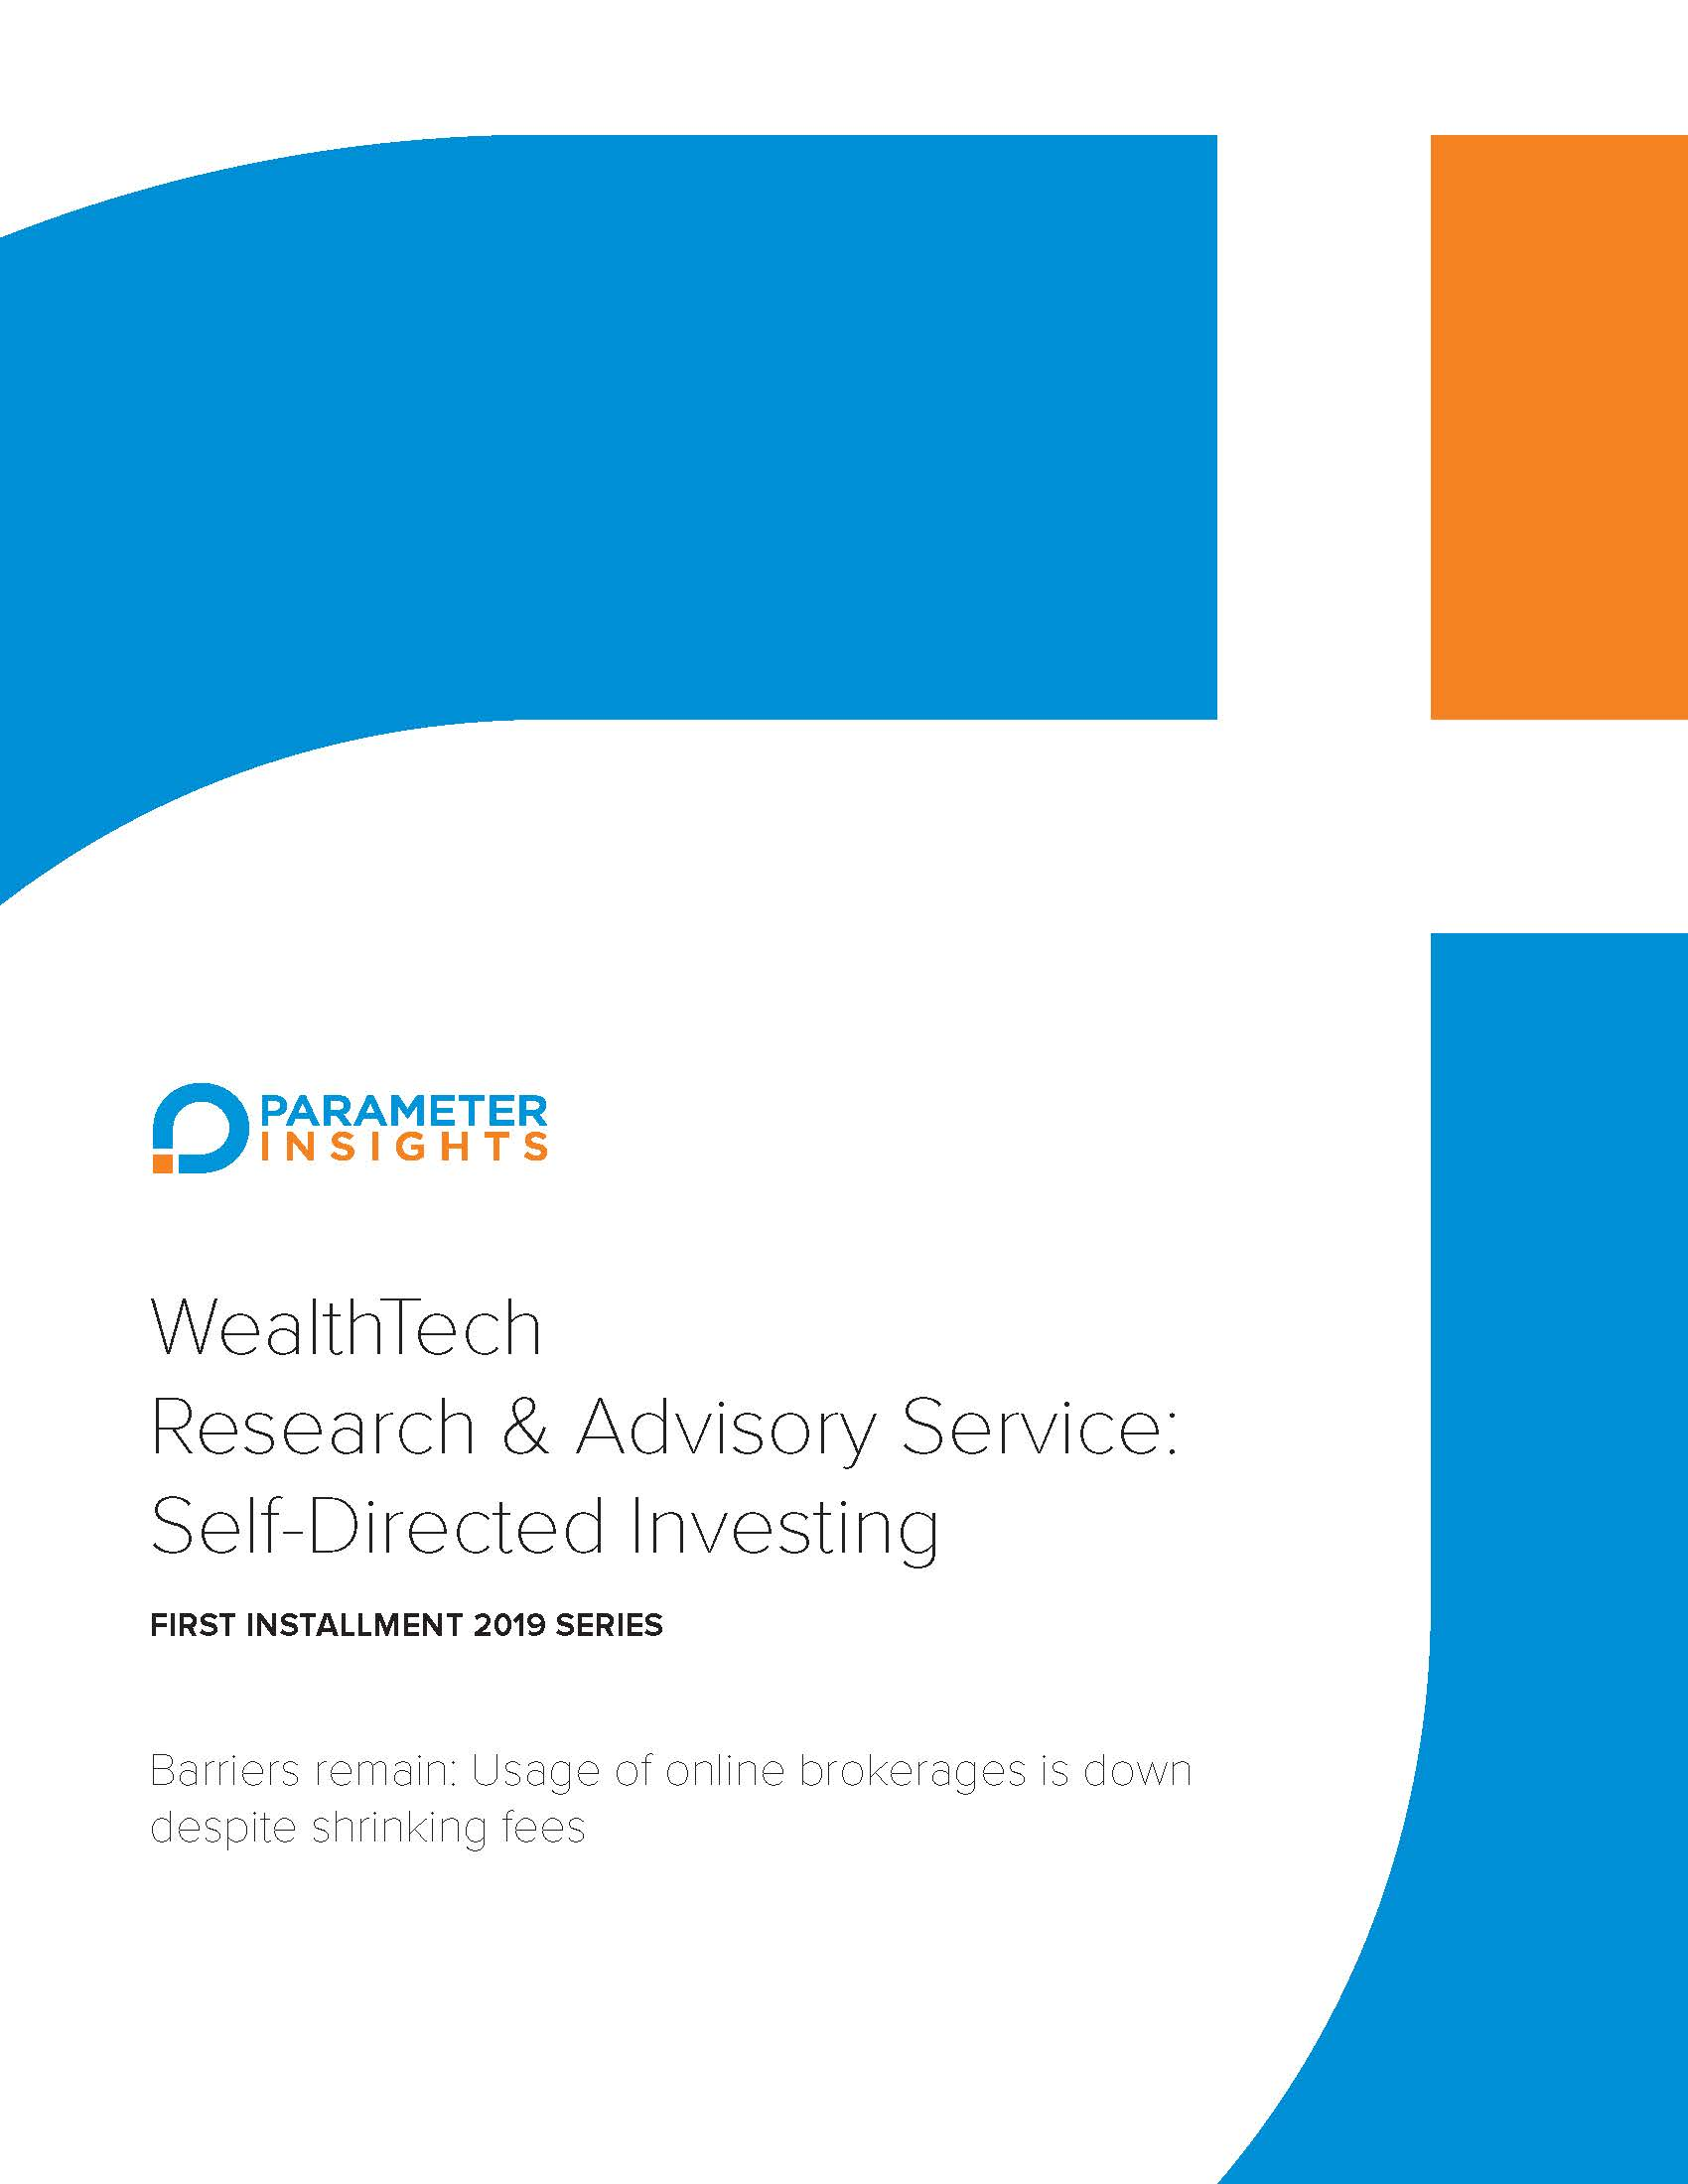 ParameterInsights_WealthTech_Research_and_Advisory_Service_SDI_First_Installment_2019_COVER_ONLY.jpg